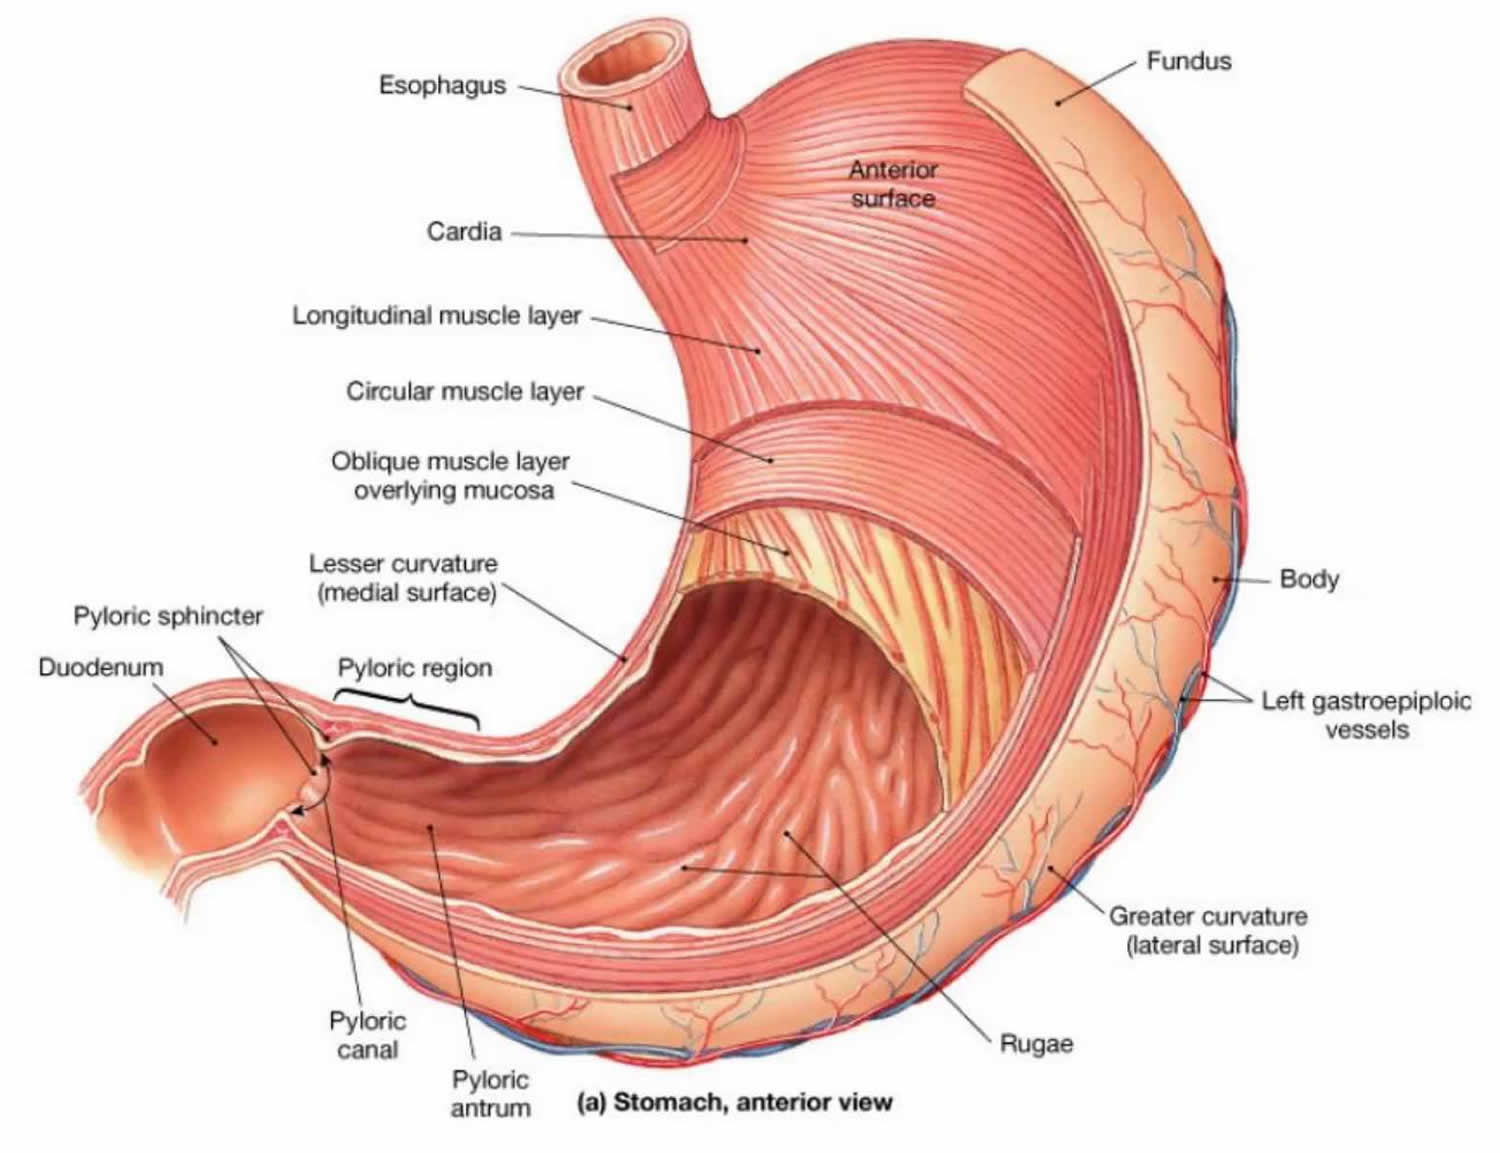 The Stomach Organs - Parts, Anatomy, Functions of the Human Stomach